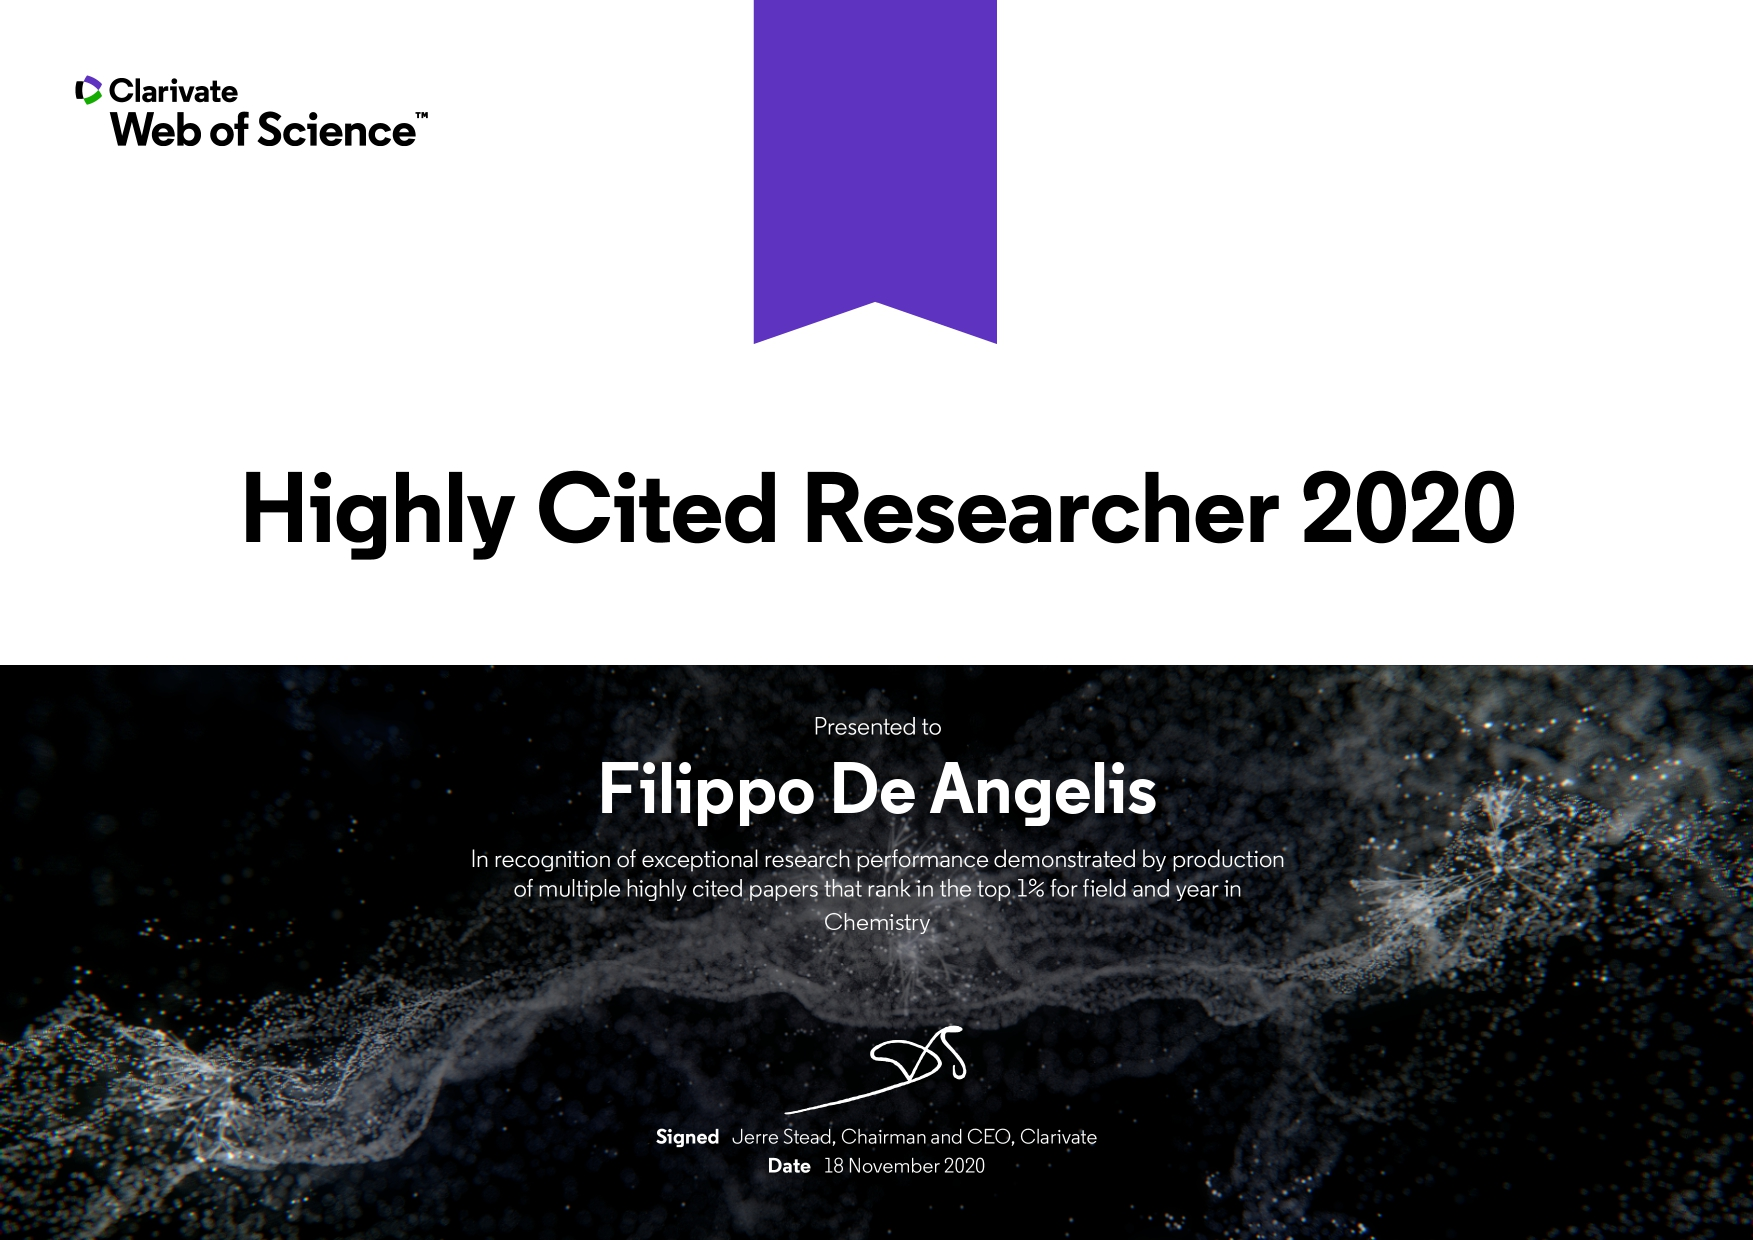 Highly Cited Researcher Award page 0001